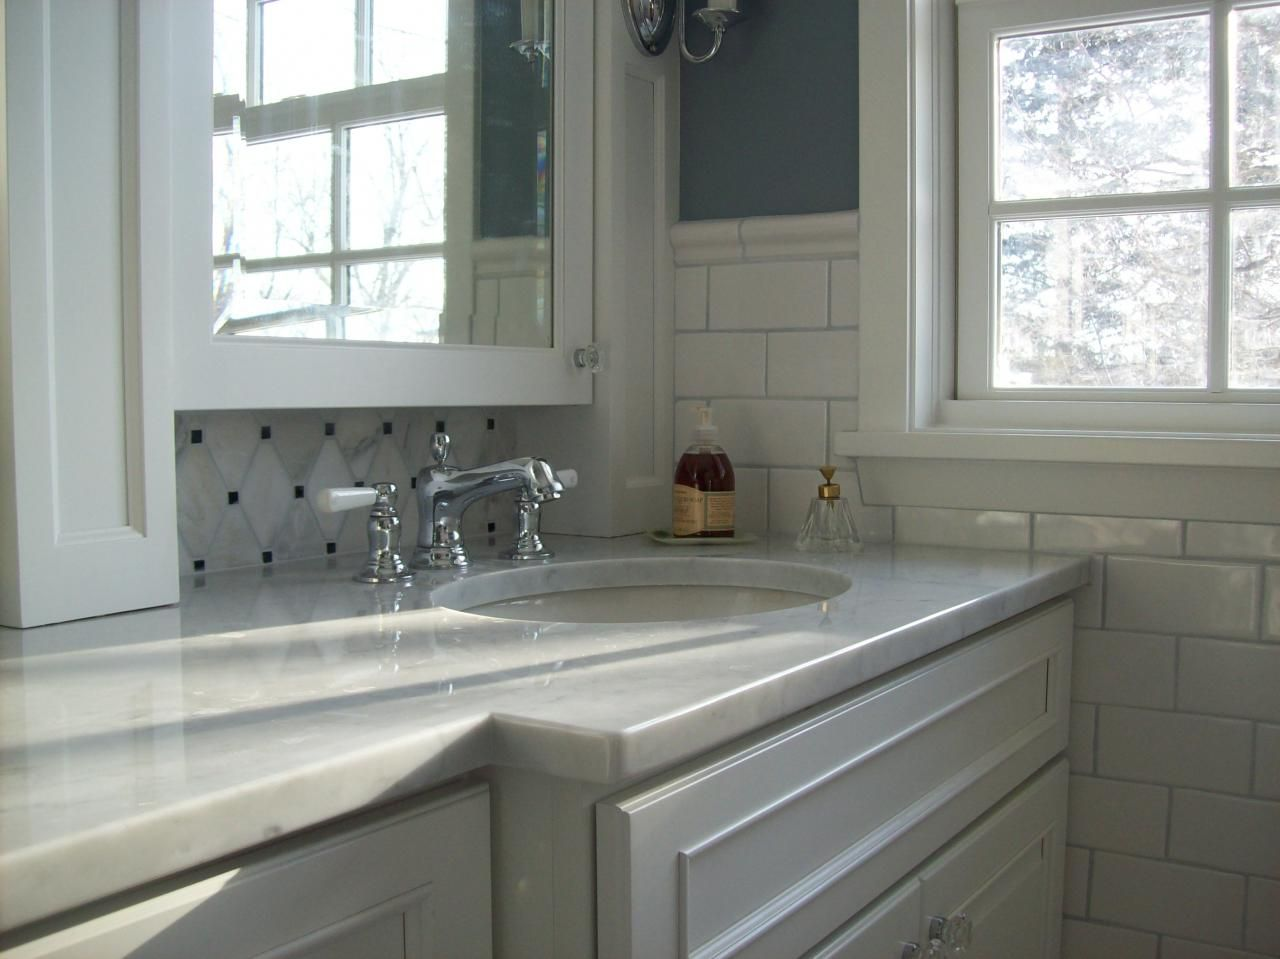 This shows the ceramic tile wainscoting and the backsplash tile ...